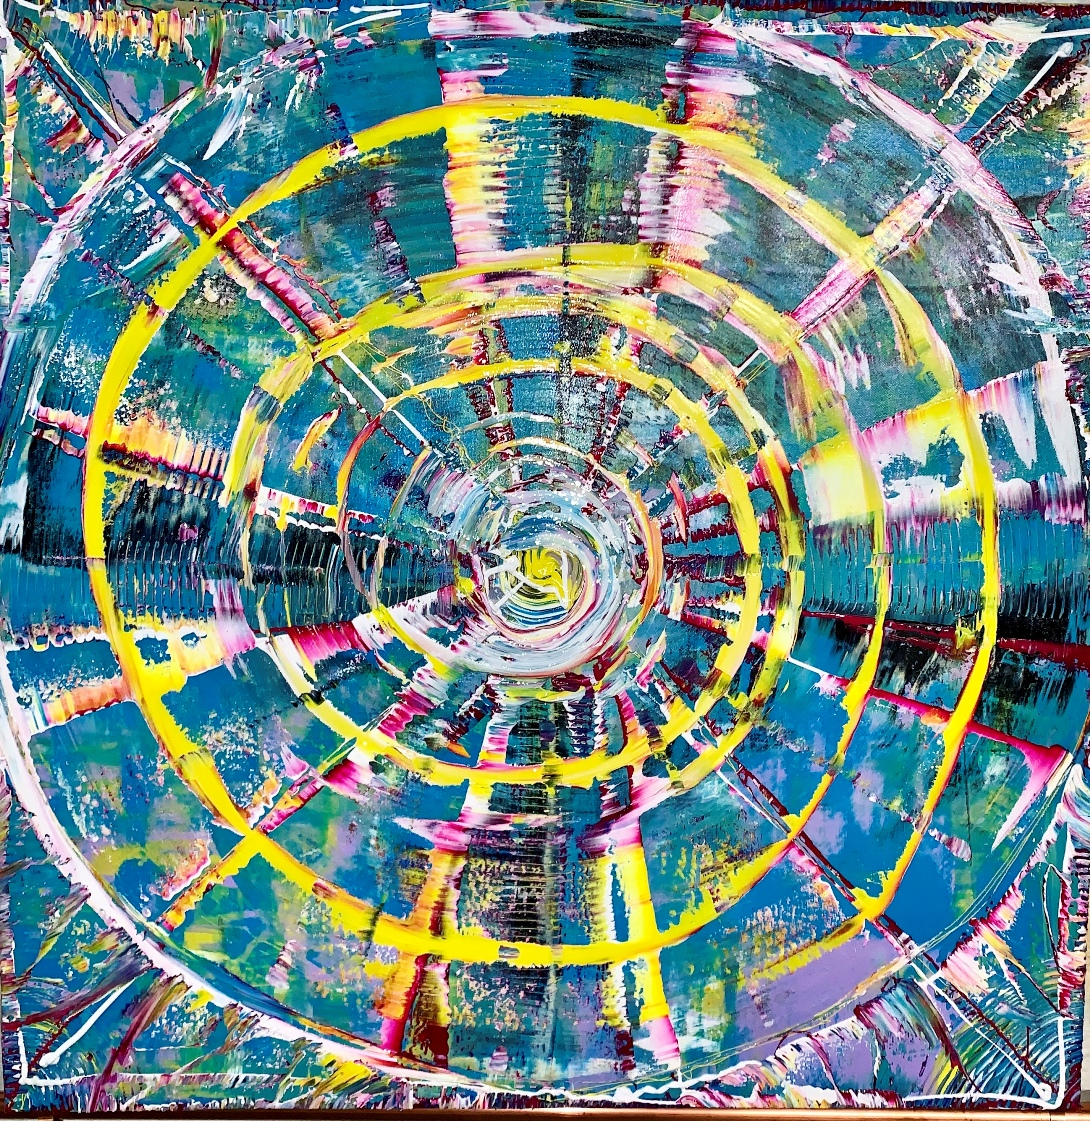 Tony Seker — An Abstract Painter Dancing with the Universe